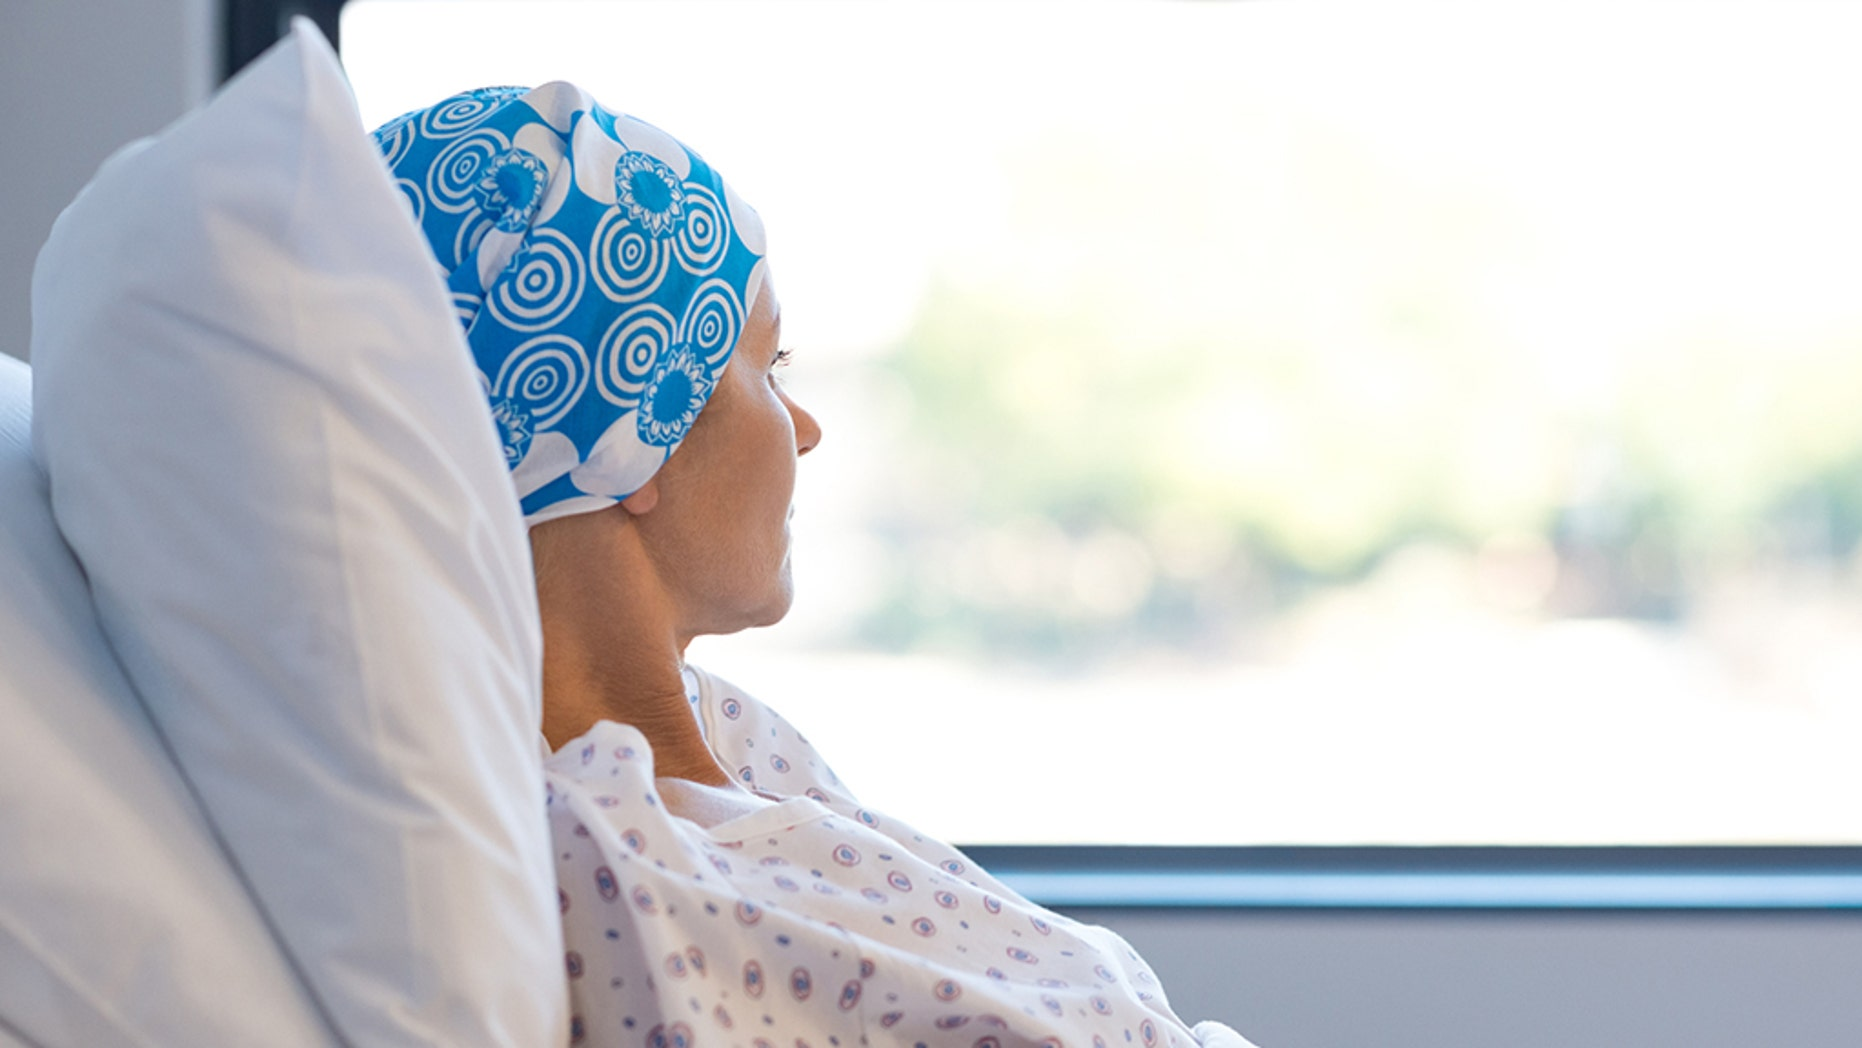 The woman in Ohio claims she is now free of cancer after the clinical trial.